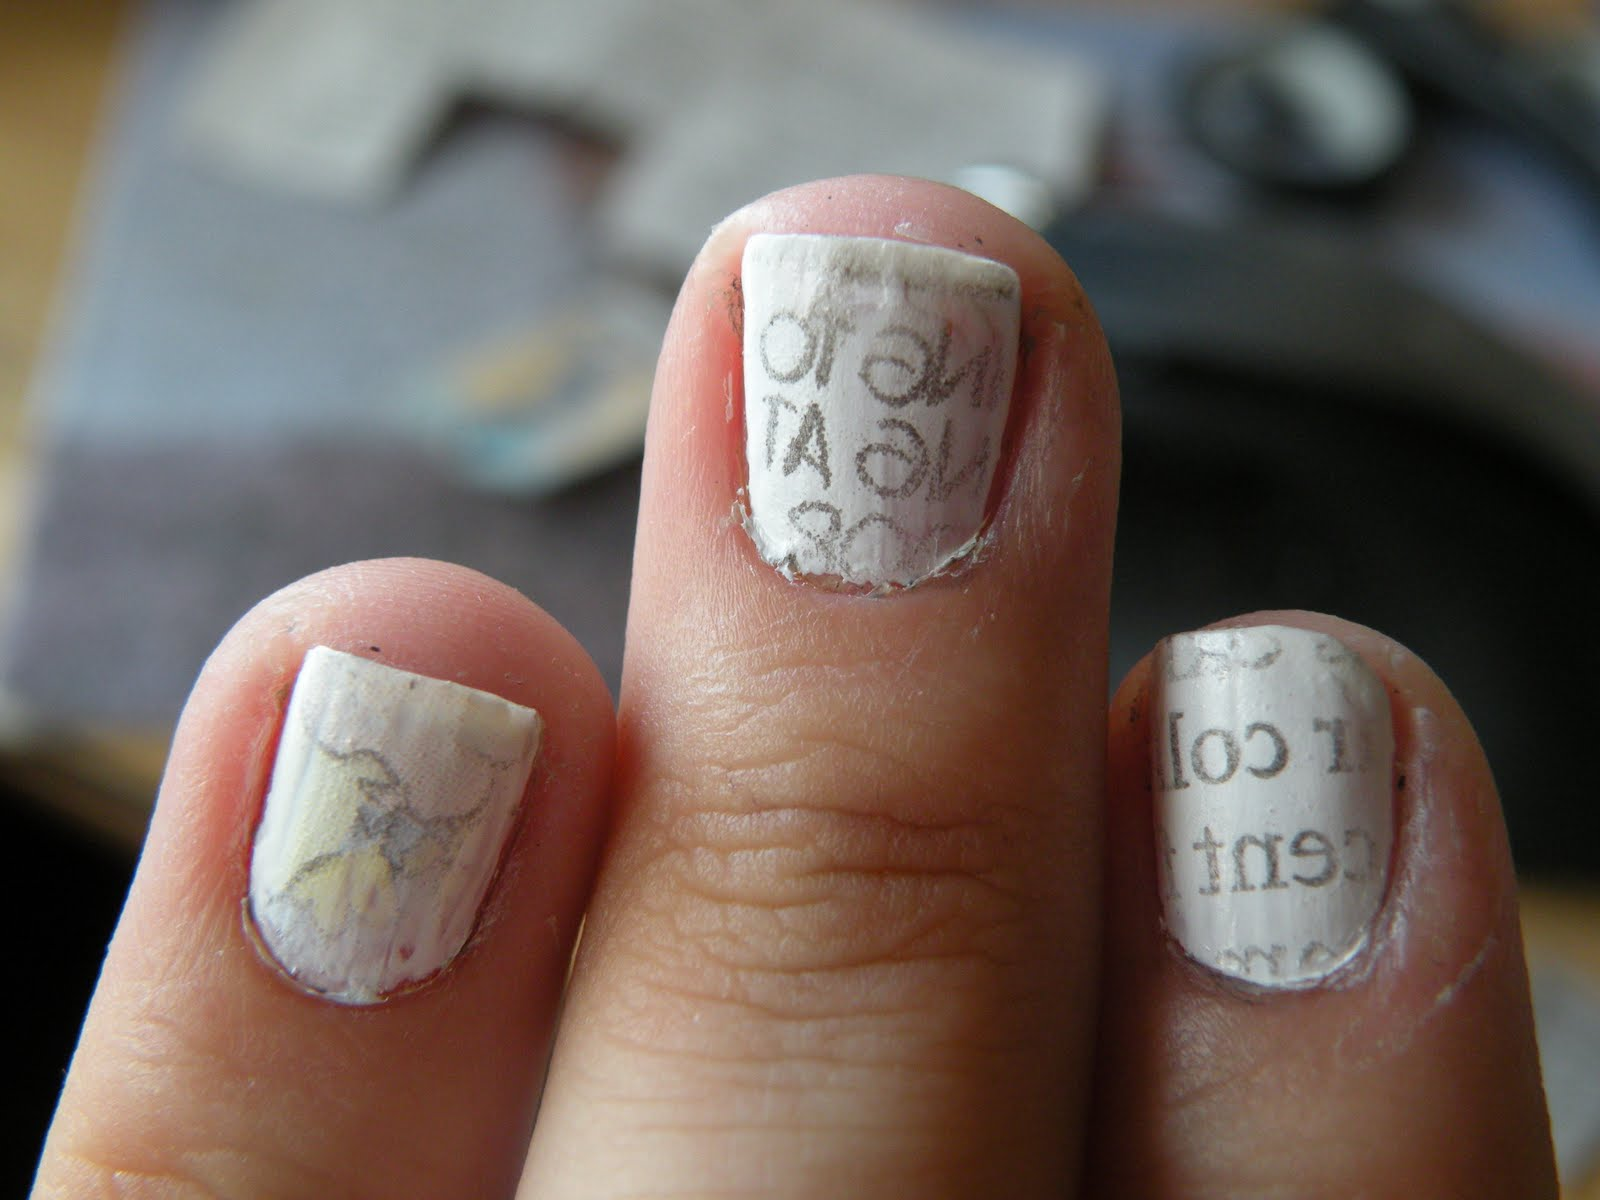 Laura\'s Nail Art: Newspaper comic book nails! (REALLY picture heavy)